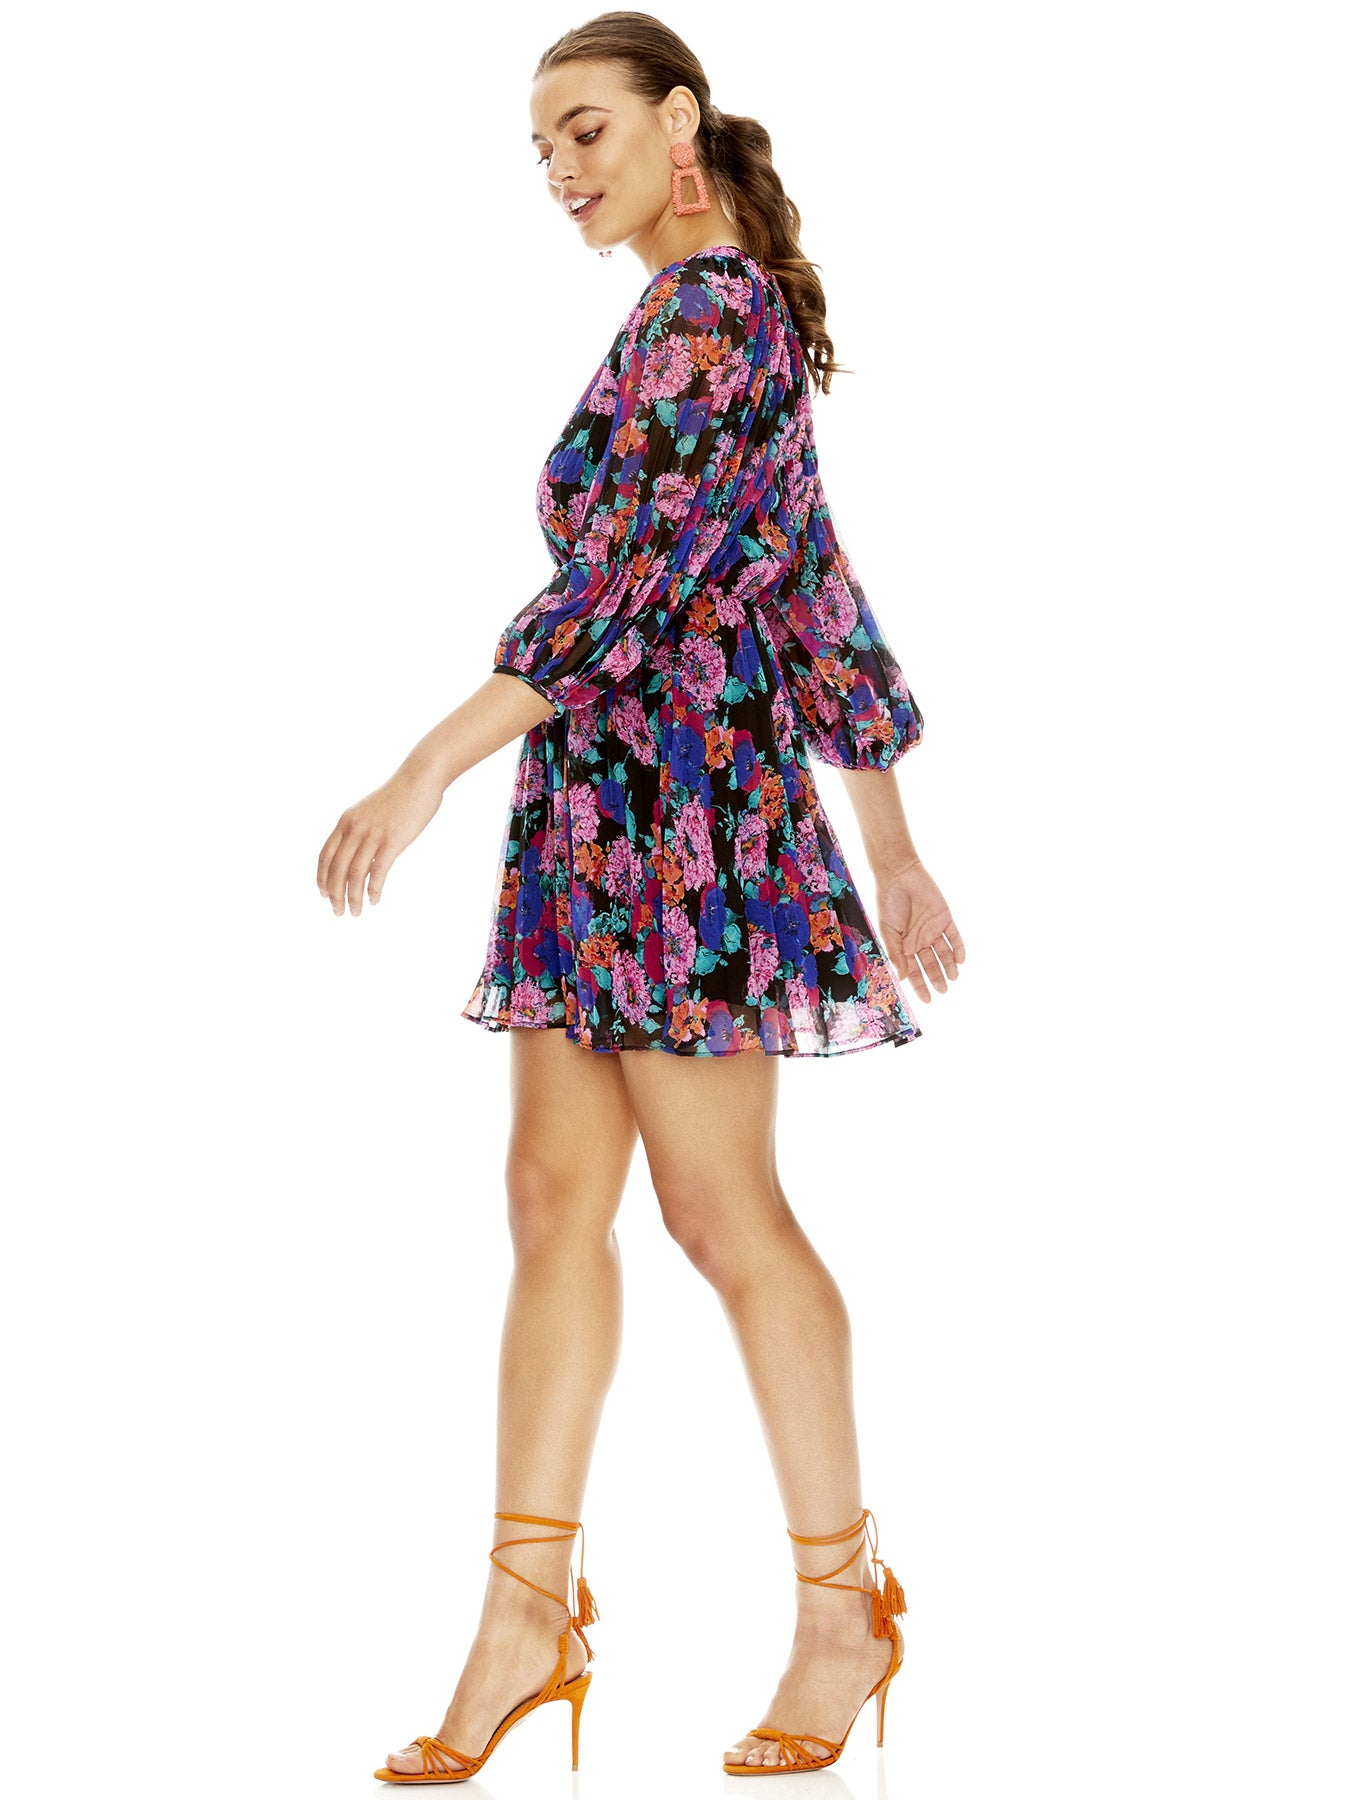 SWEET TALK MINI DRESS